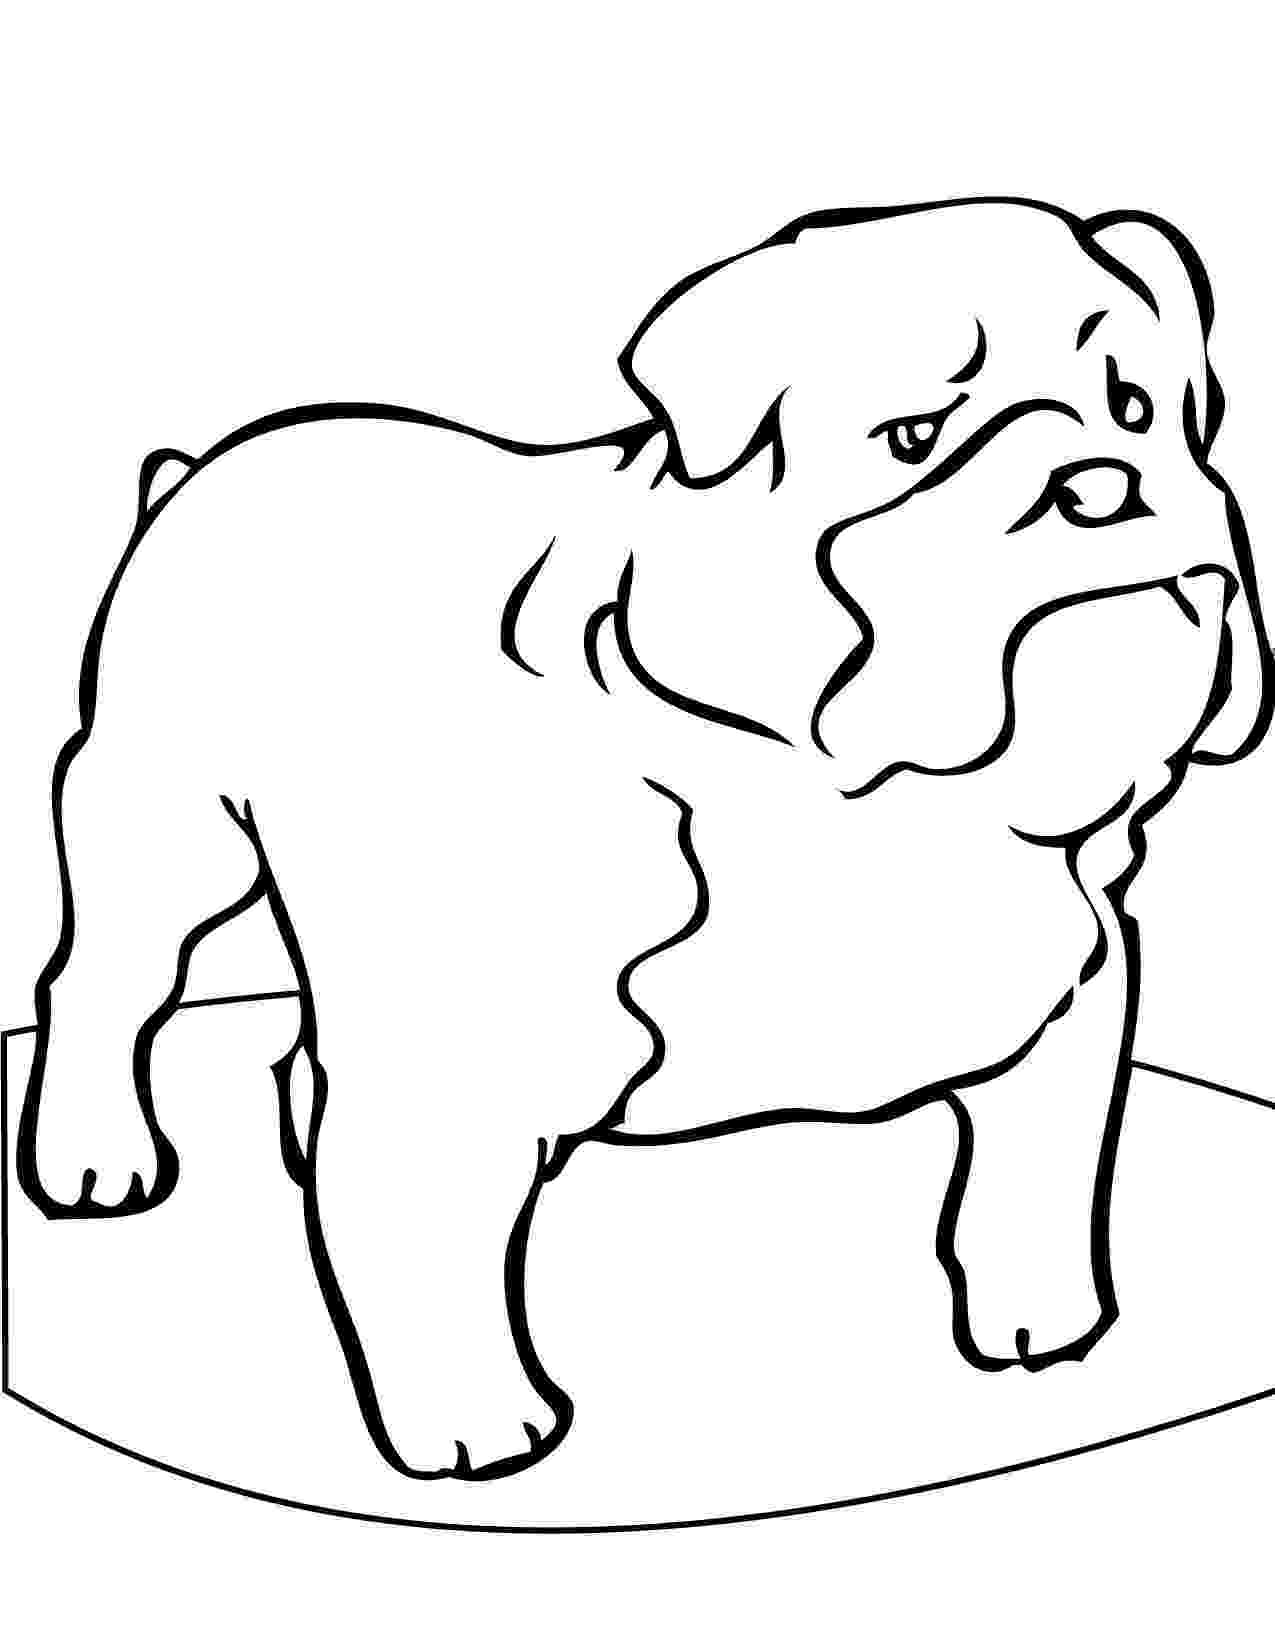 bulldogs coloring pages bulldog coloring pages to download and print for free coloring bulldogs pages 1 1